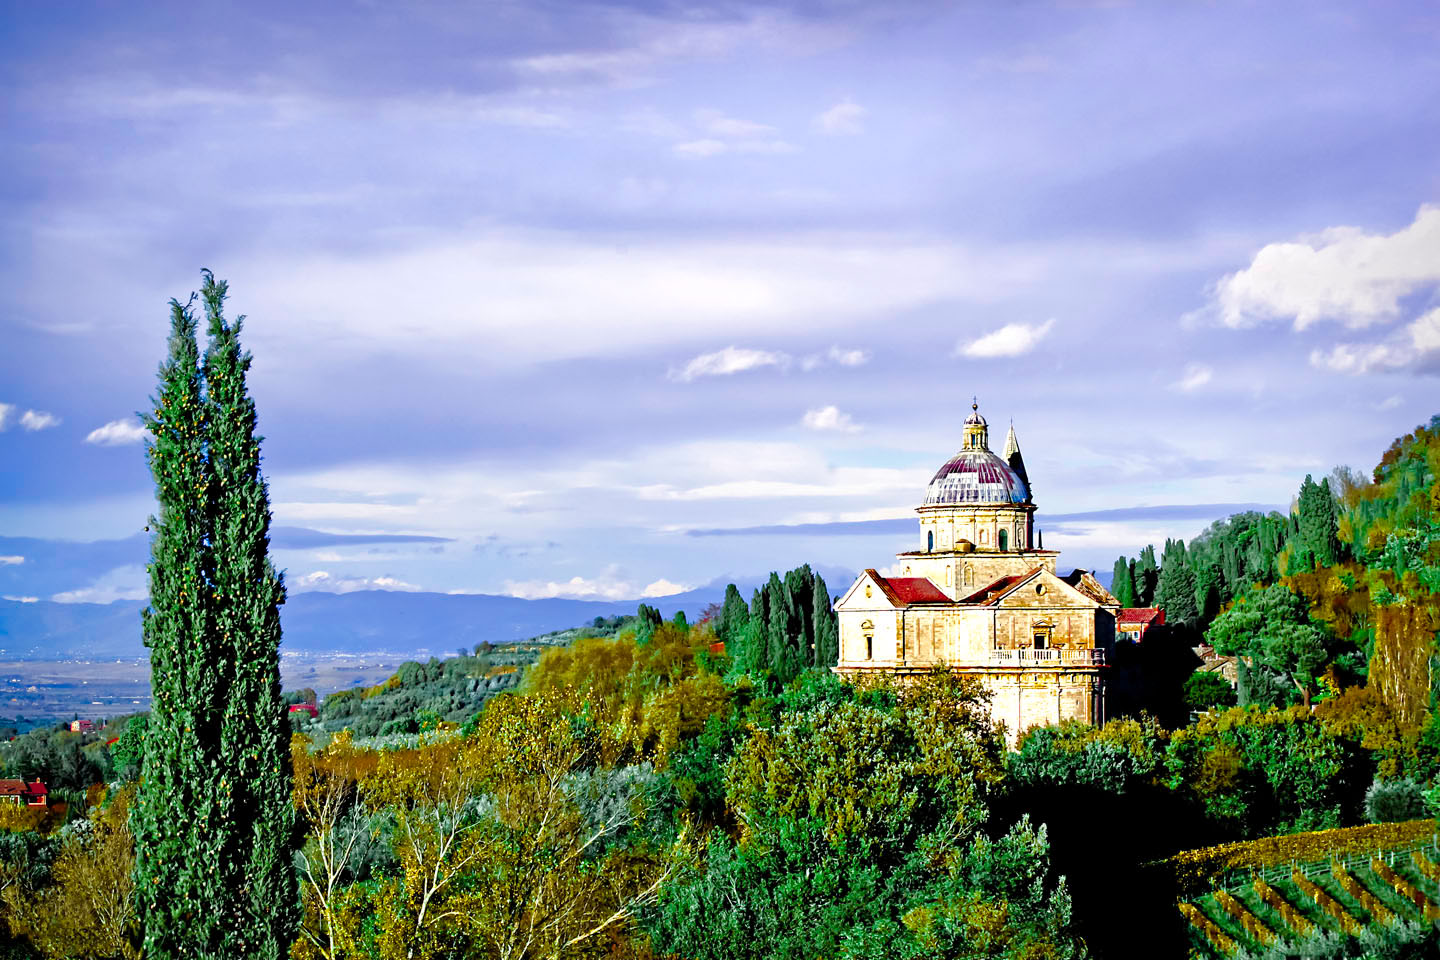 Church in the hills leading to Montepulciano